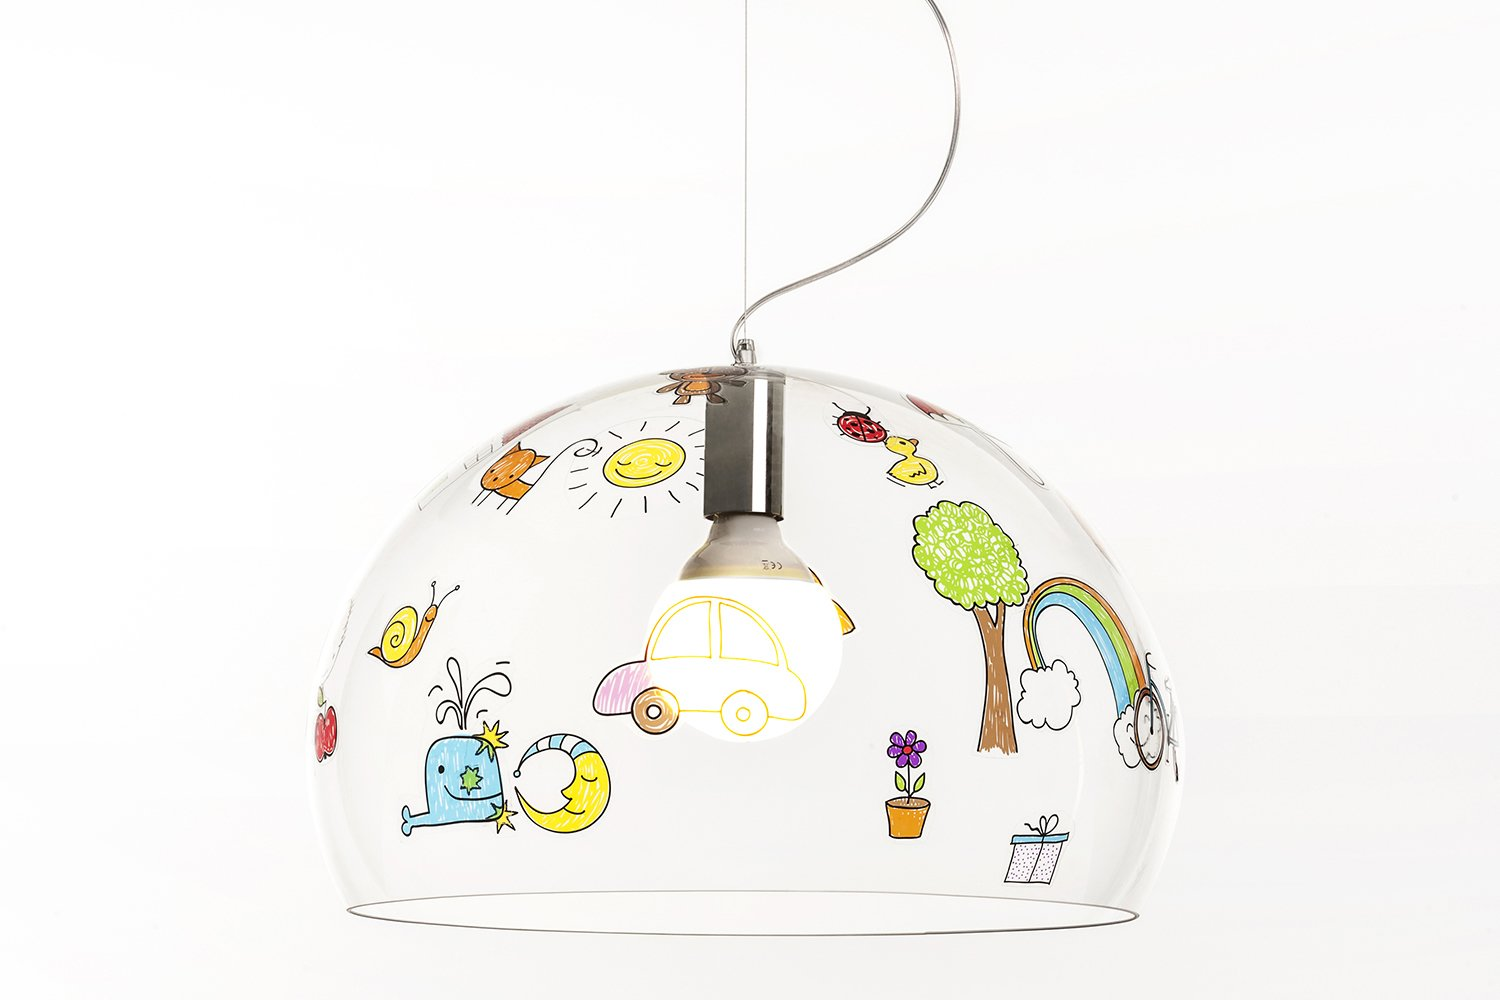 Fly lamp by Ferruccio Laviani for Kartell  Kartell Takes on the Rocking Horse with a Super Kids' Line by Allie Weiss